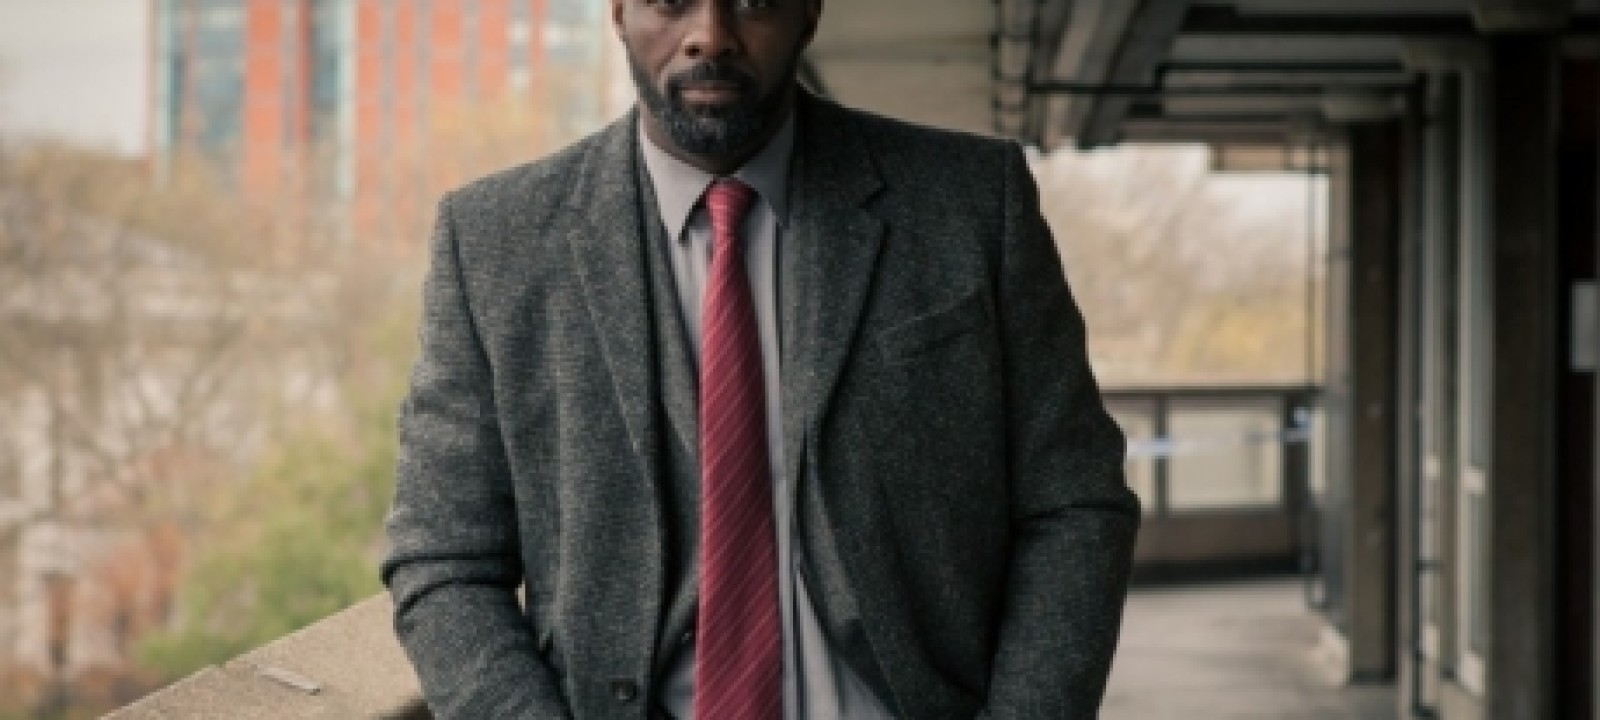 Idris Elba in 'Luther' (BBC)